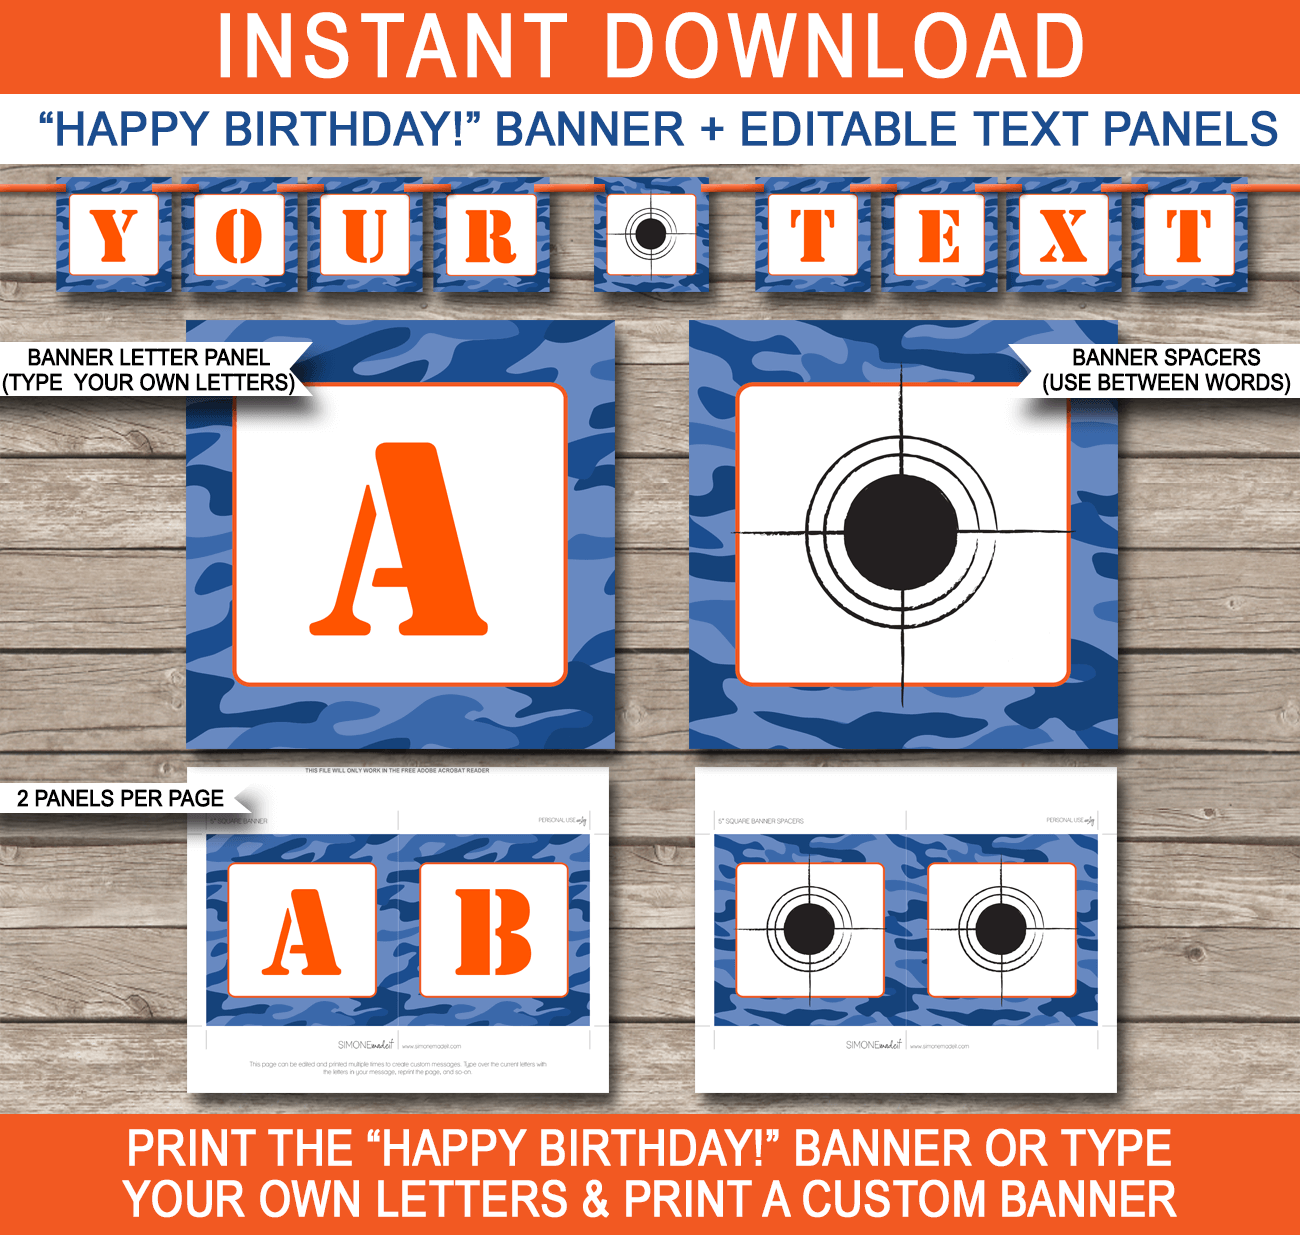 Nerf Party Banner | Happy Birthday Banner | Editable and Printable DIY Templates | Instant Download